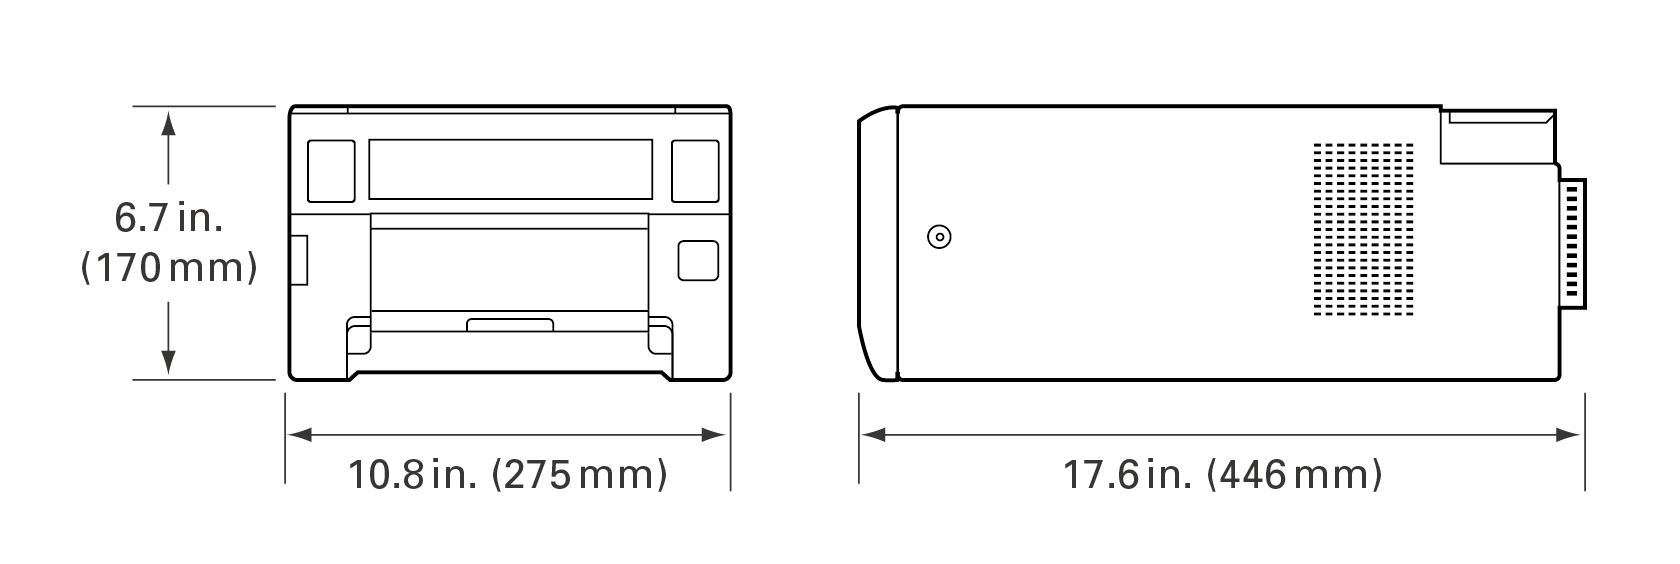 [image] Front and side view graphic of ASK-300, showing height, width, and depth dimensions